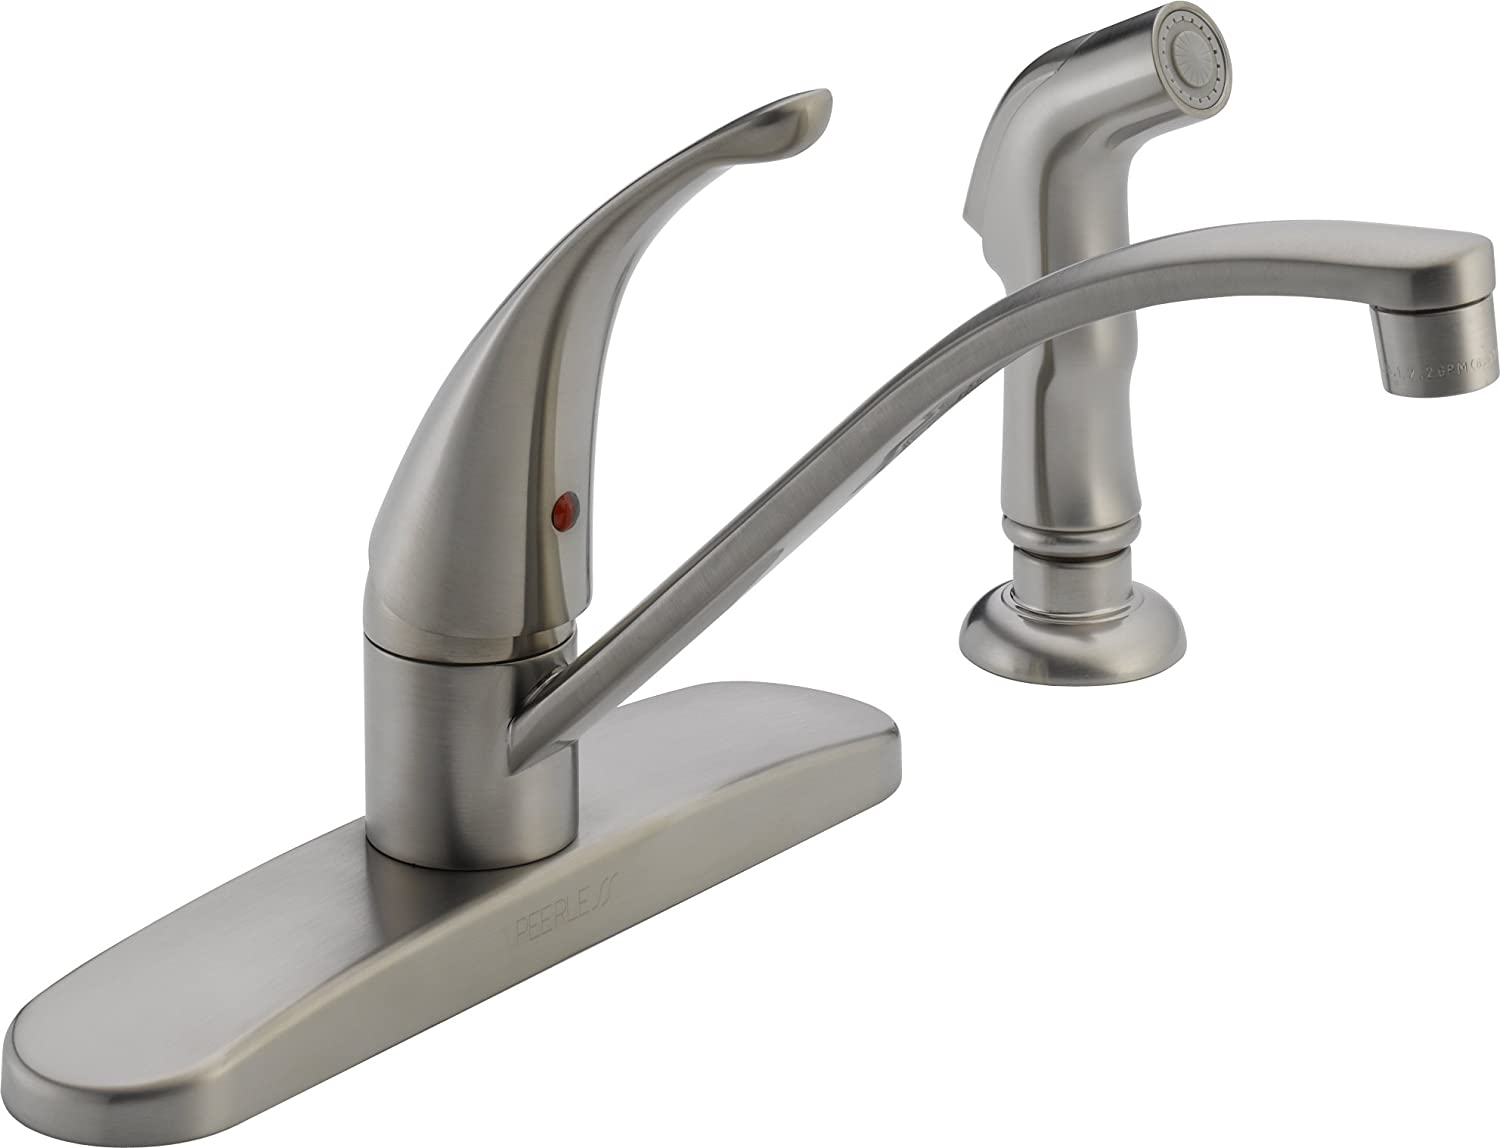 Wonderful Peerless P188500LF SS 1 Handle Side Spray Kitchen Faucet, Stainless   Pot  Filler Kitchen Sink Faucets   Amazon.com